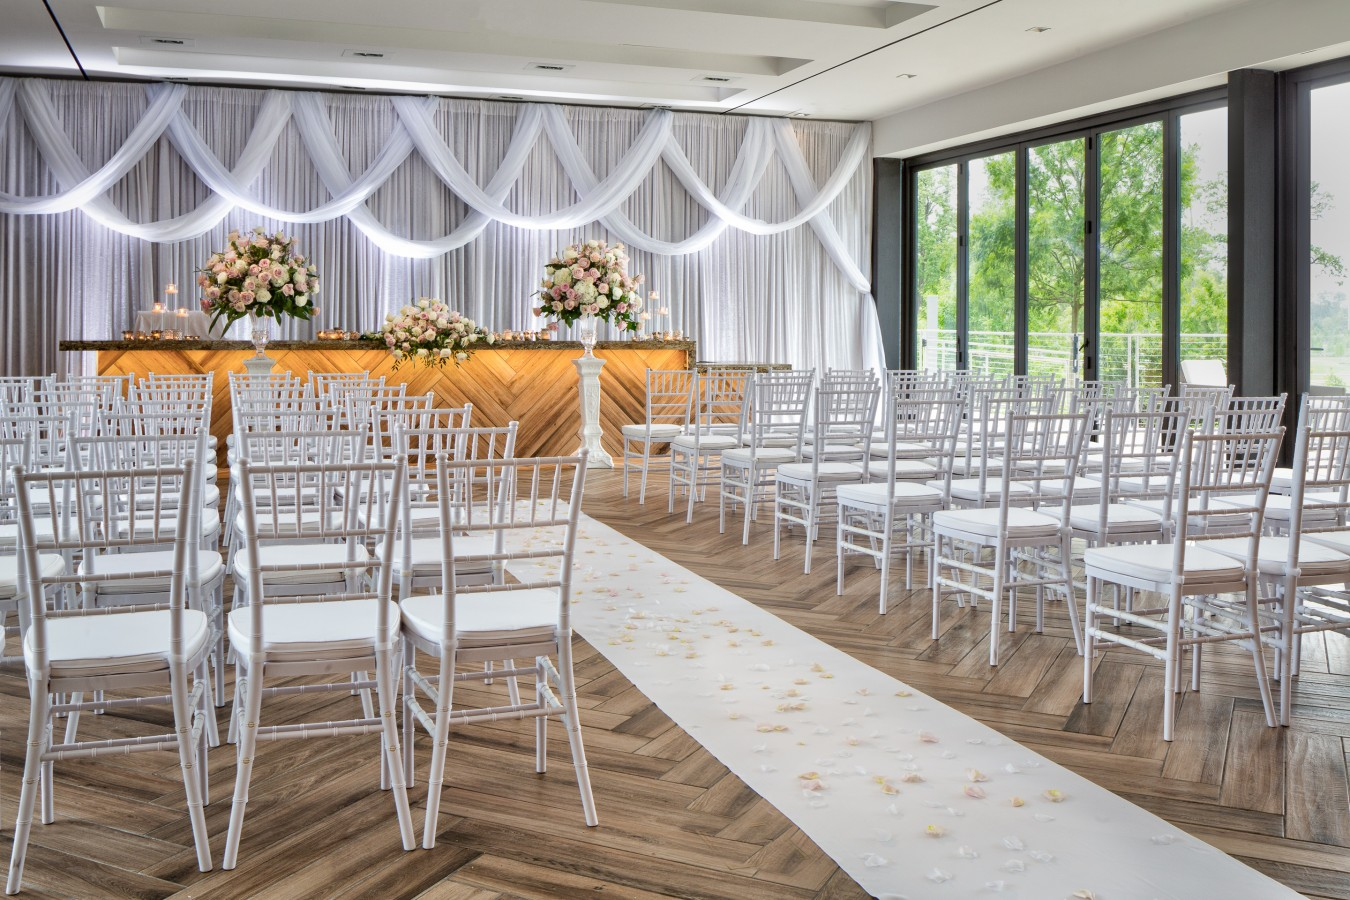 Marriott City Place At Springwoods Village - Houston Wedding Venues